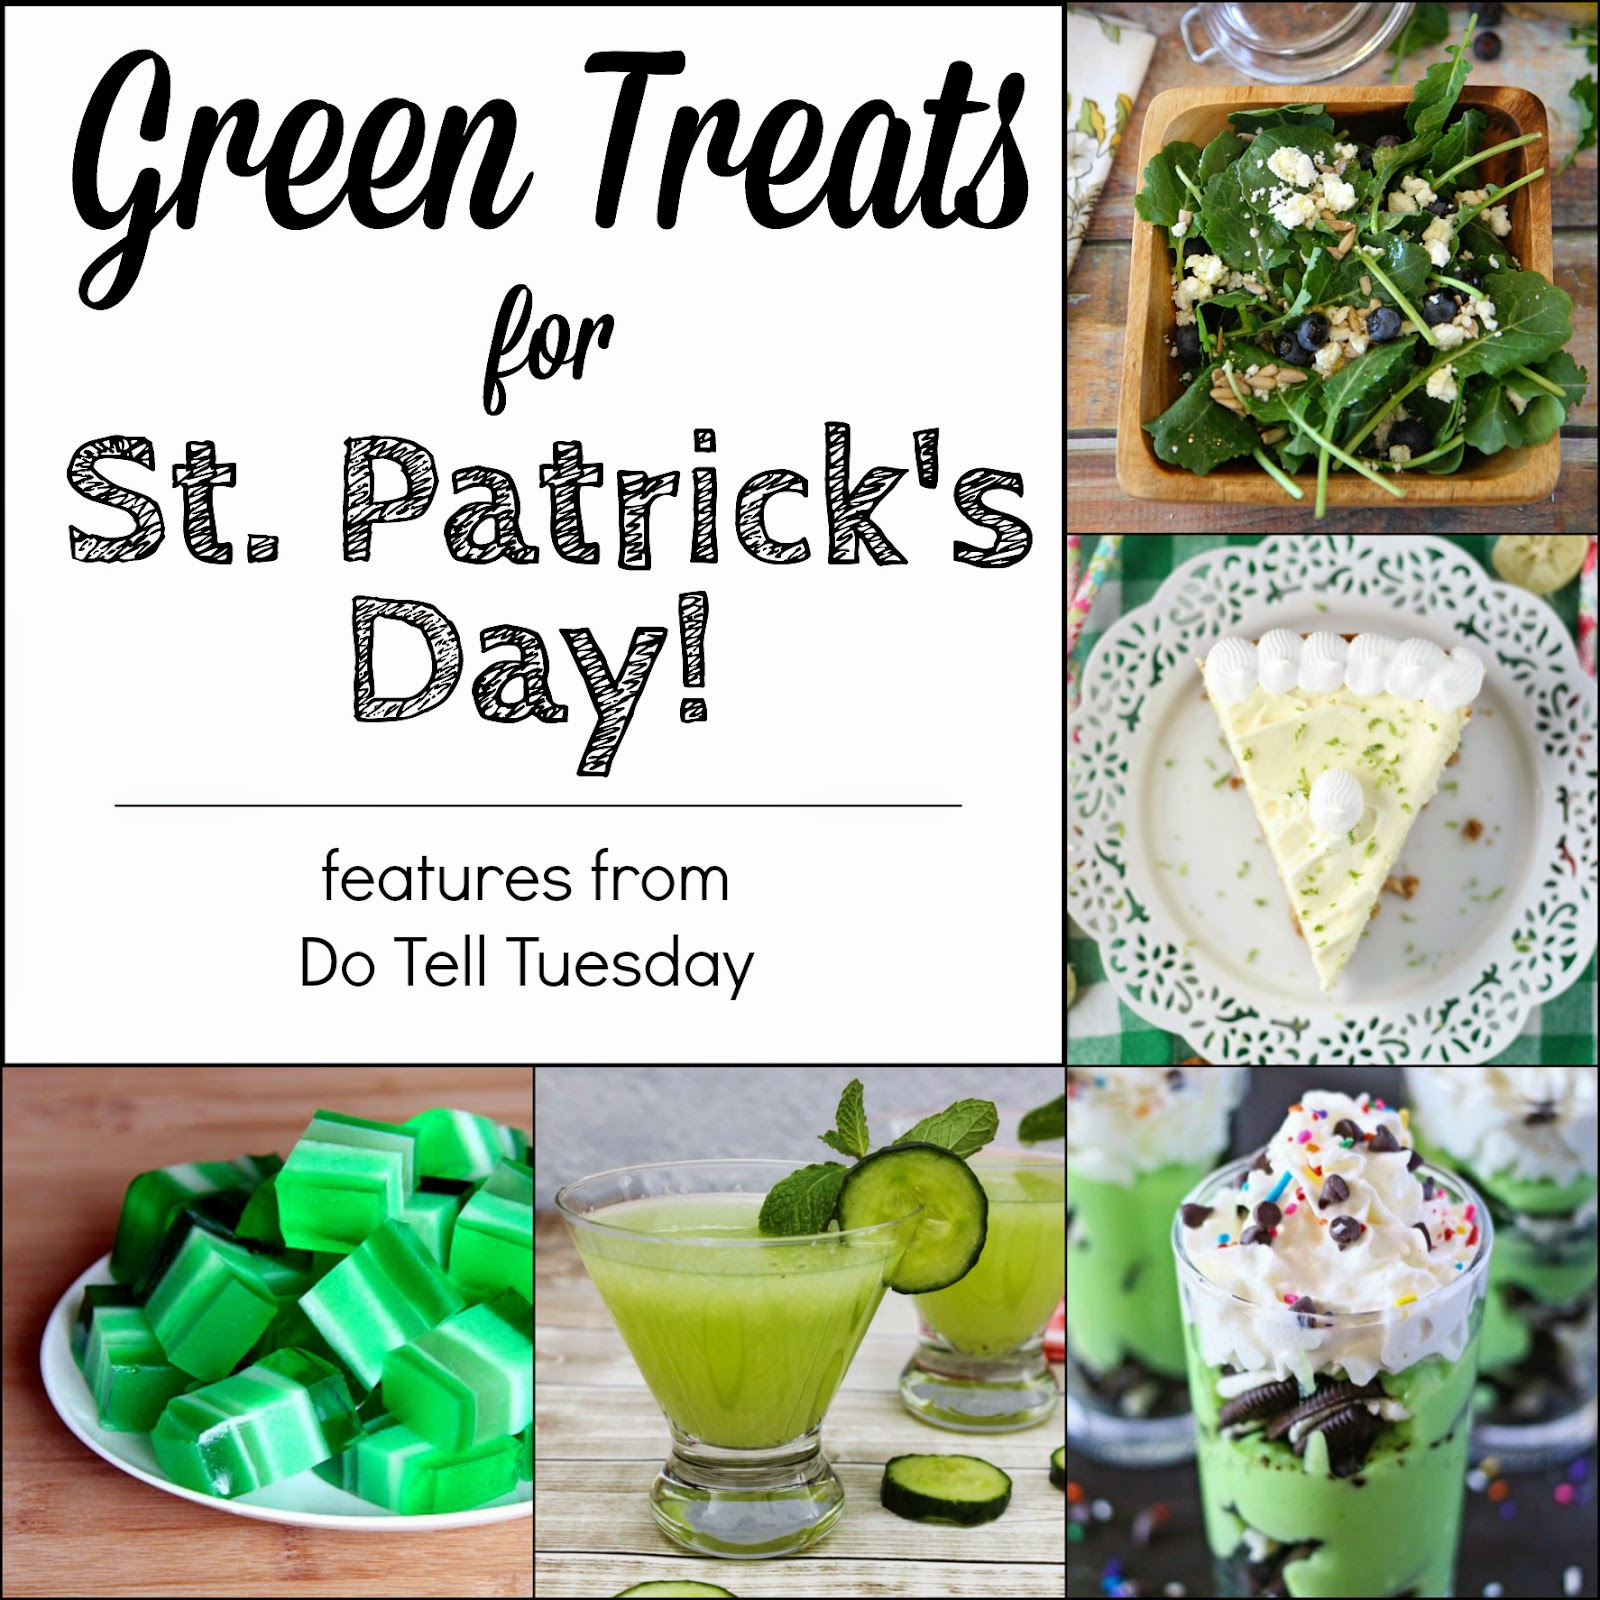 Green Treats for St. Patrick's Day on Do Tell Tuesday at Diane's Vintage Zest!